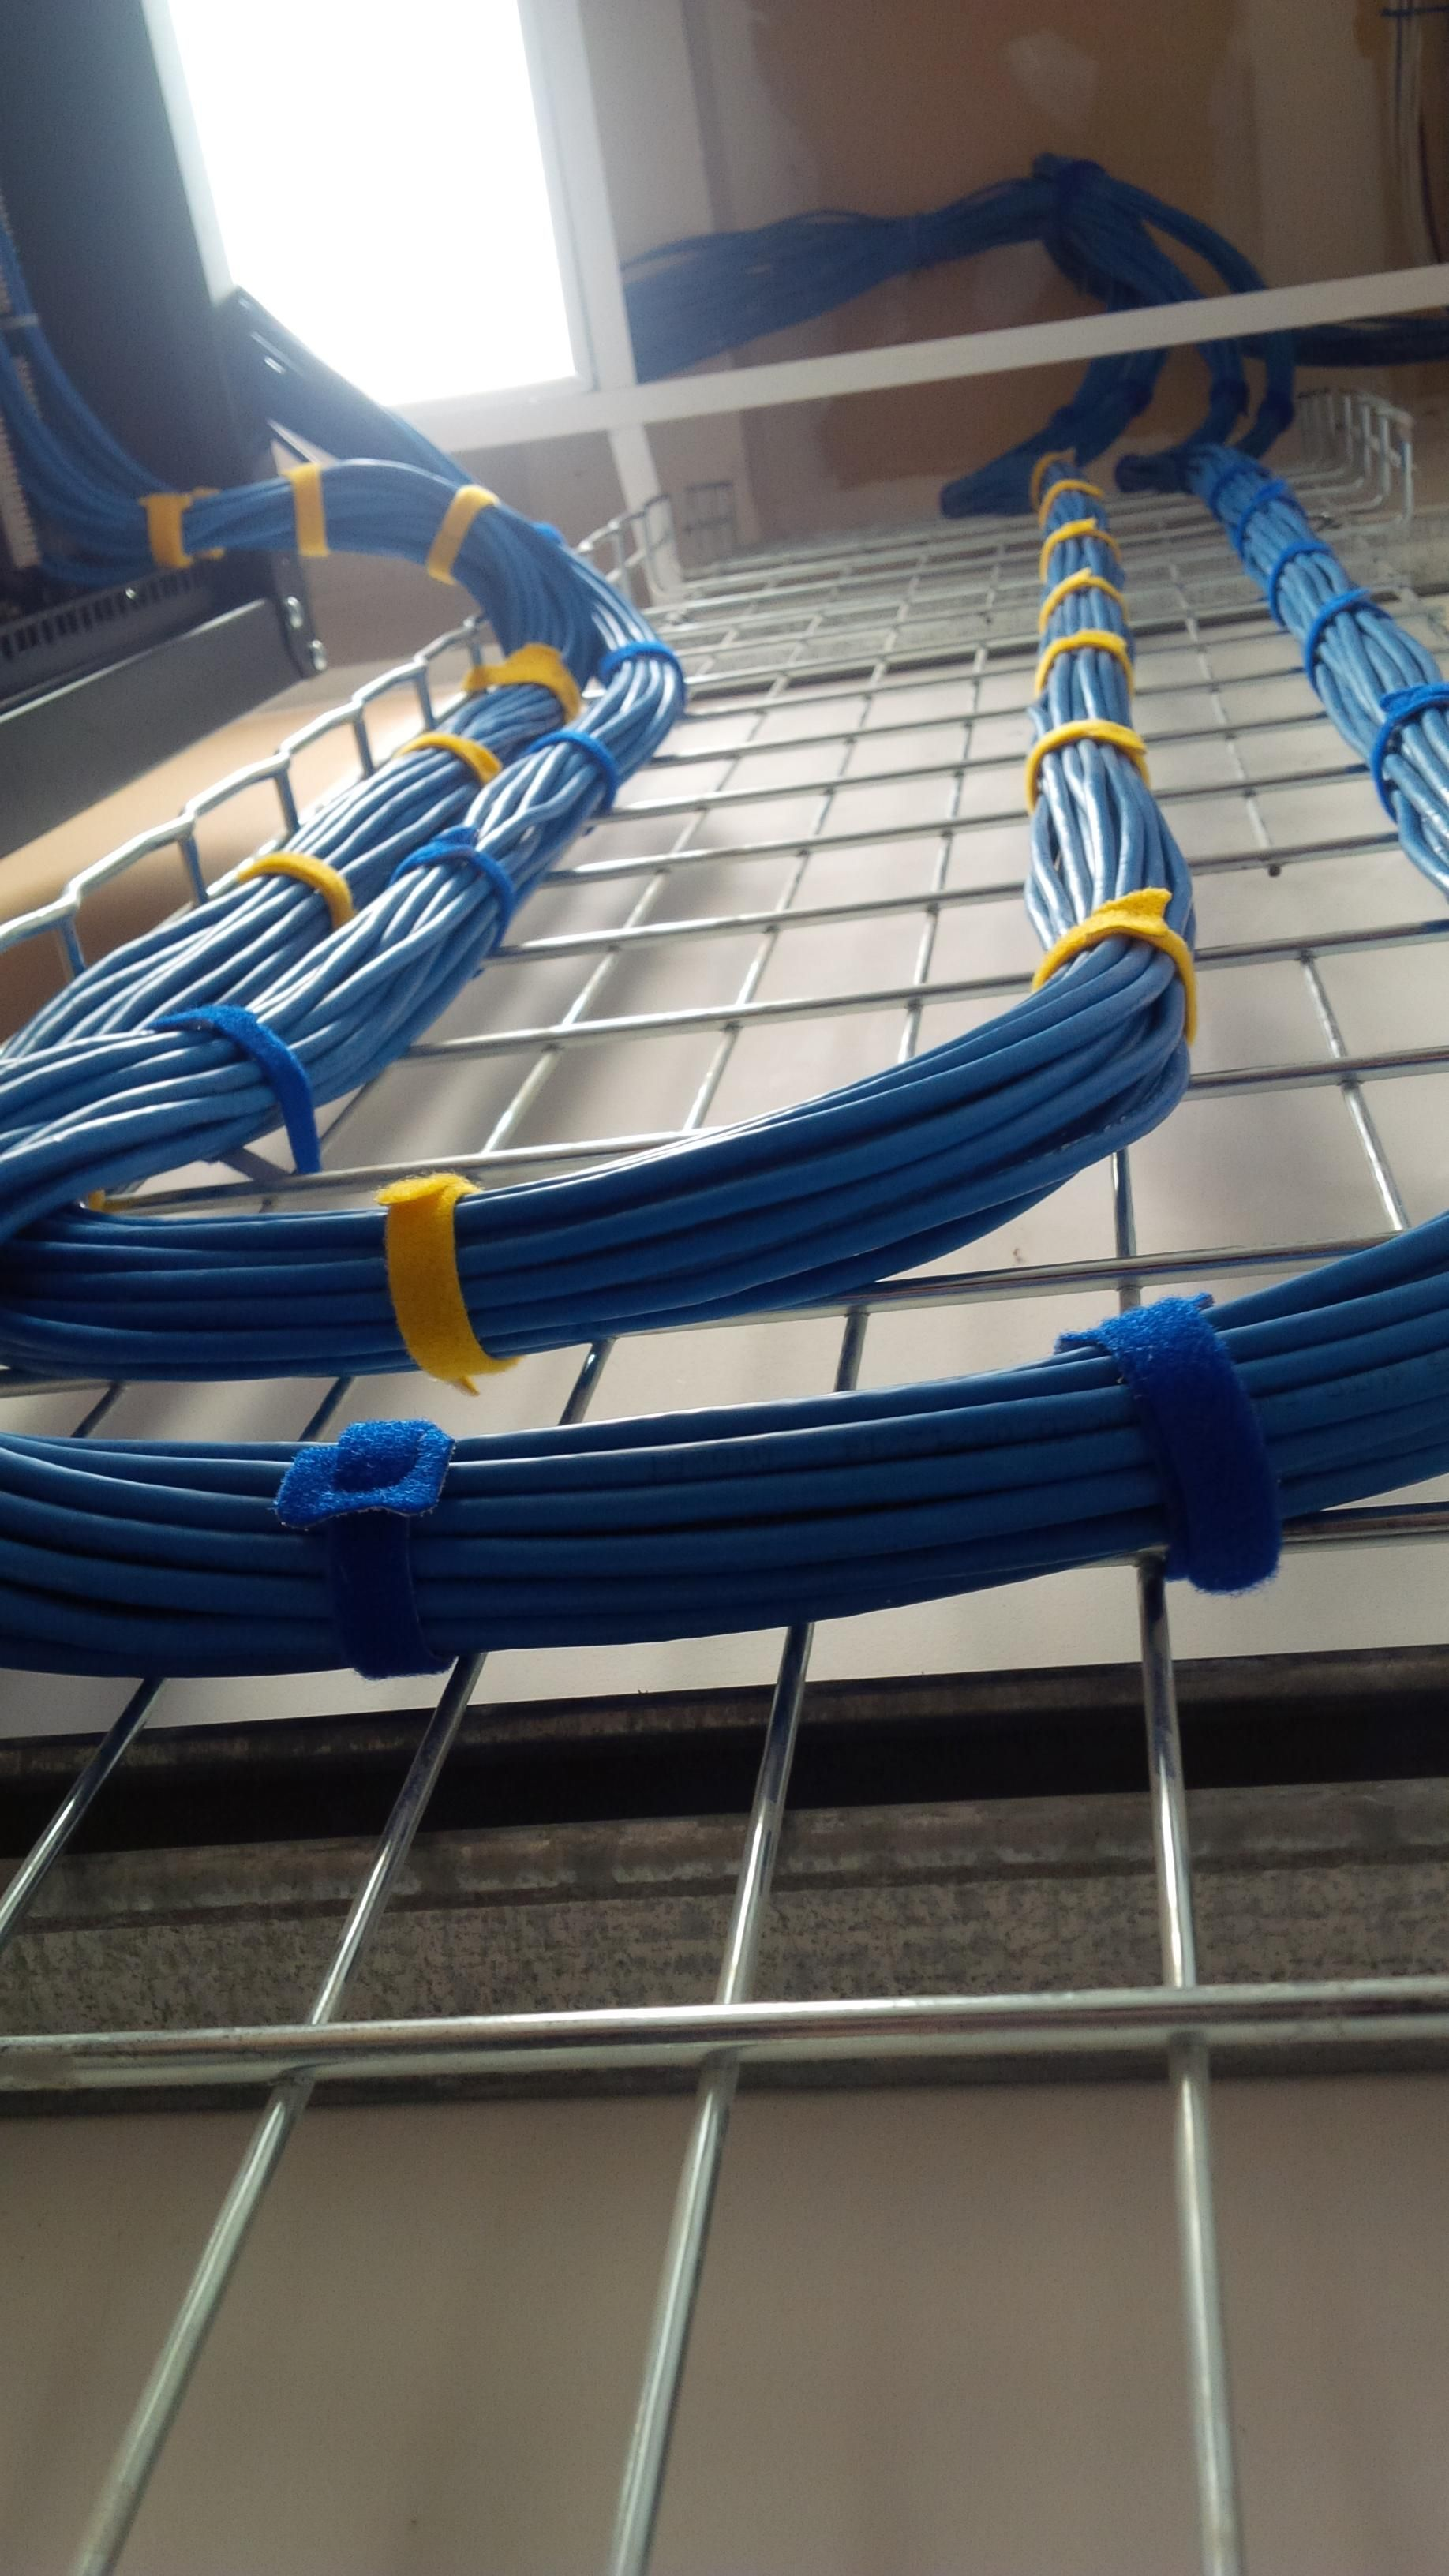 Running Ethernet Cables From The Ceiling Into Server Cabinet Structured Wiring